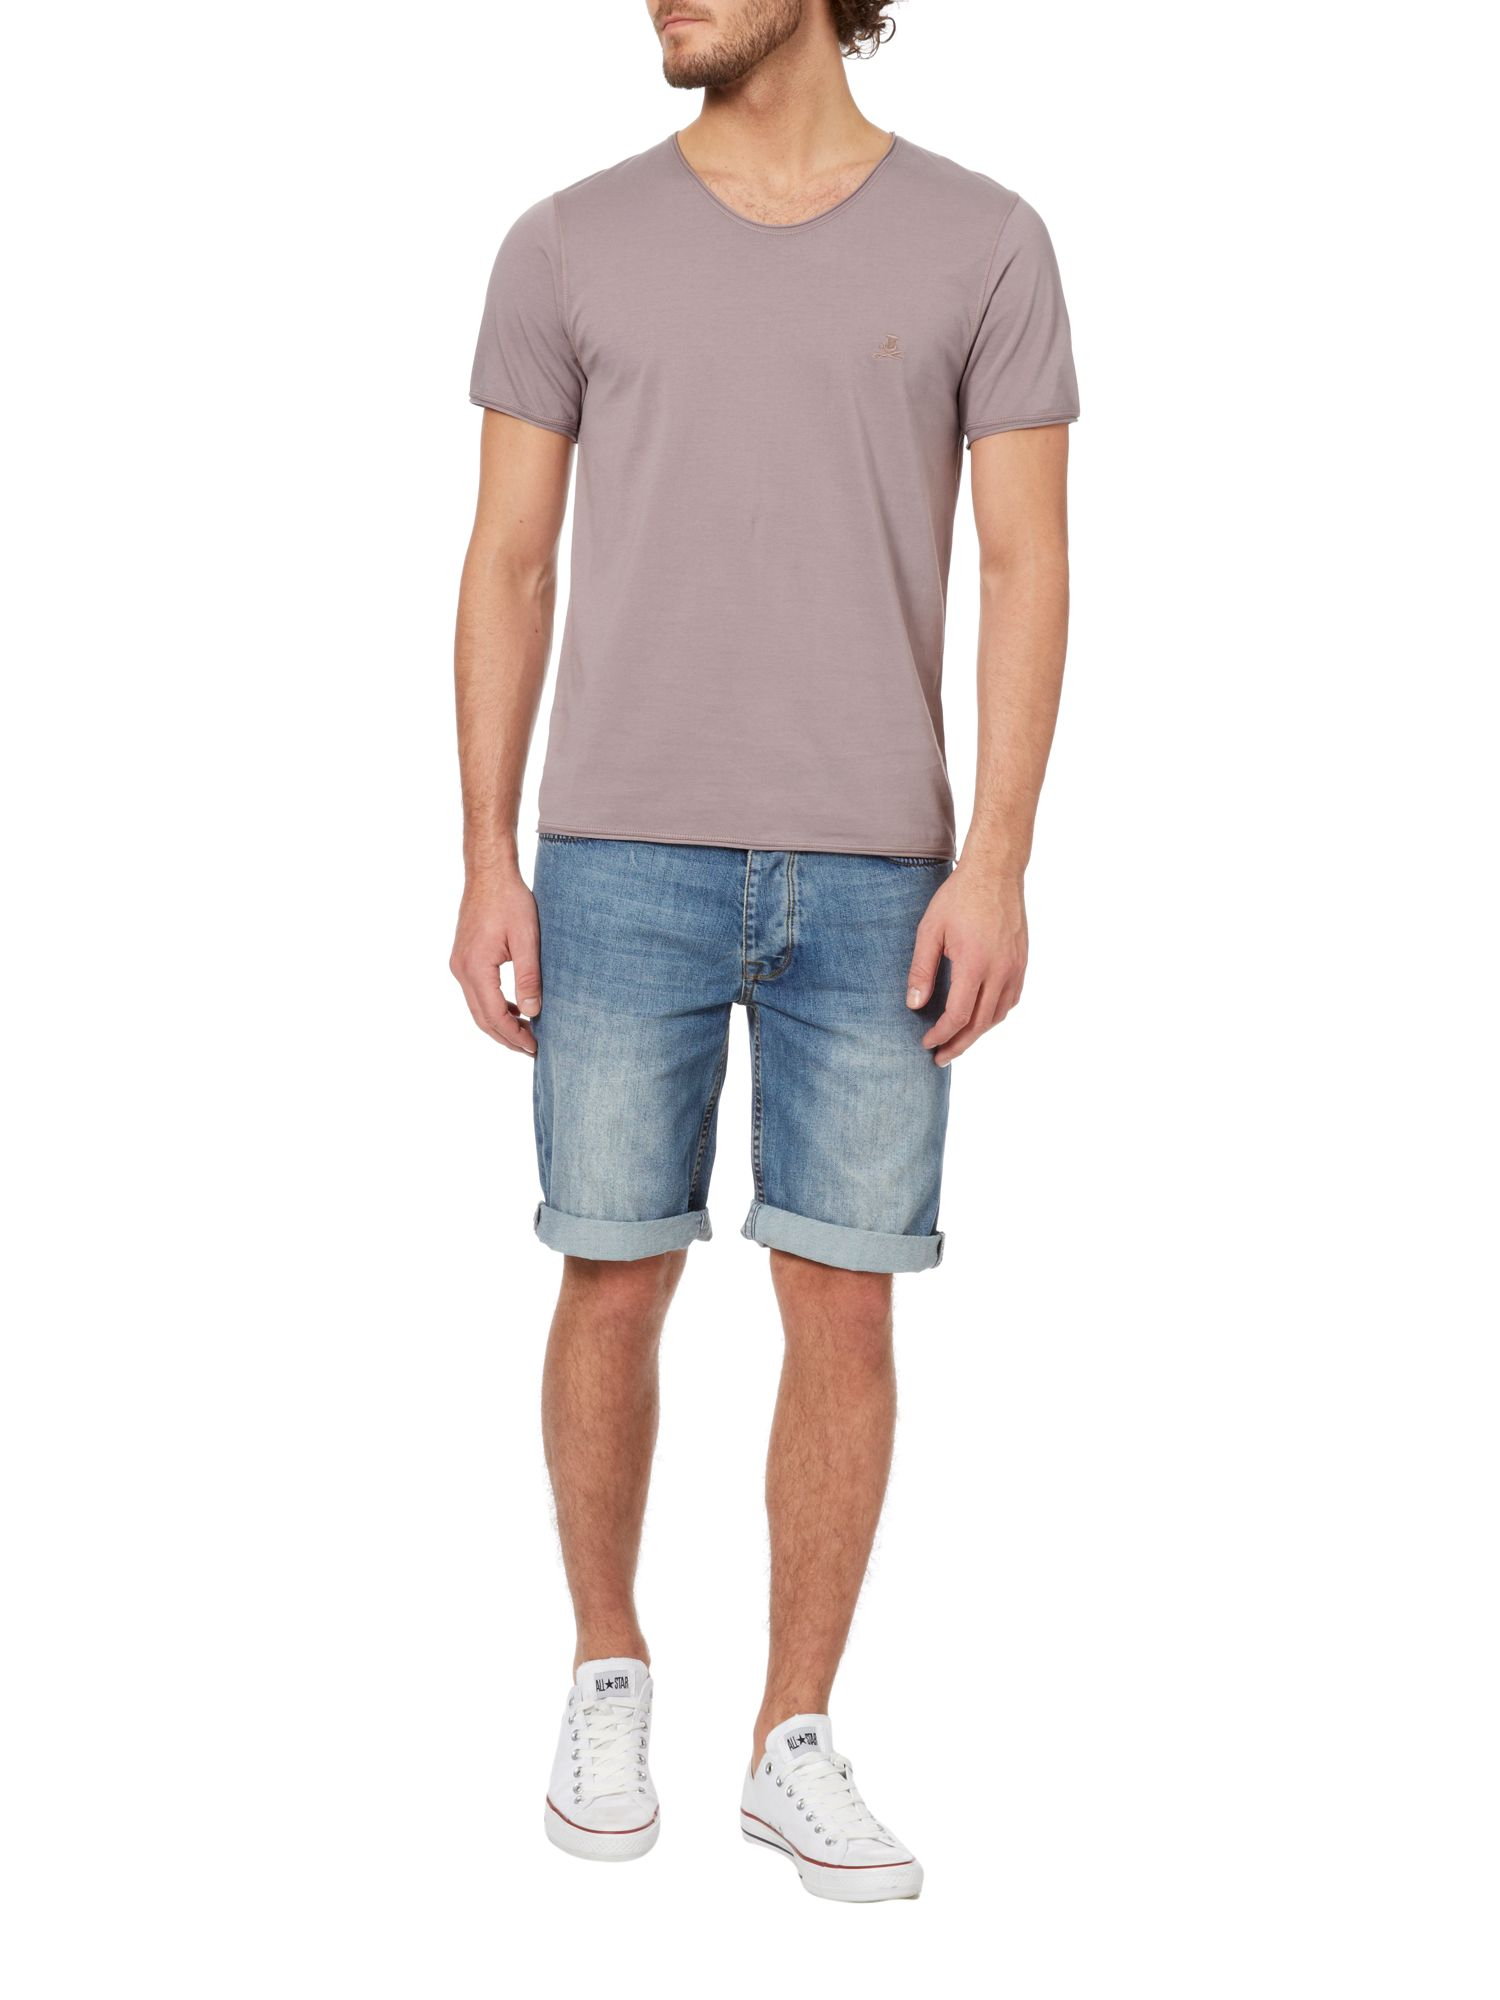 Lyst Label Lab Band Pigment Jersey Scoop Neck Tshirt In Purple For Men